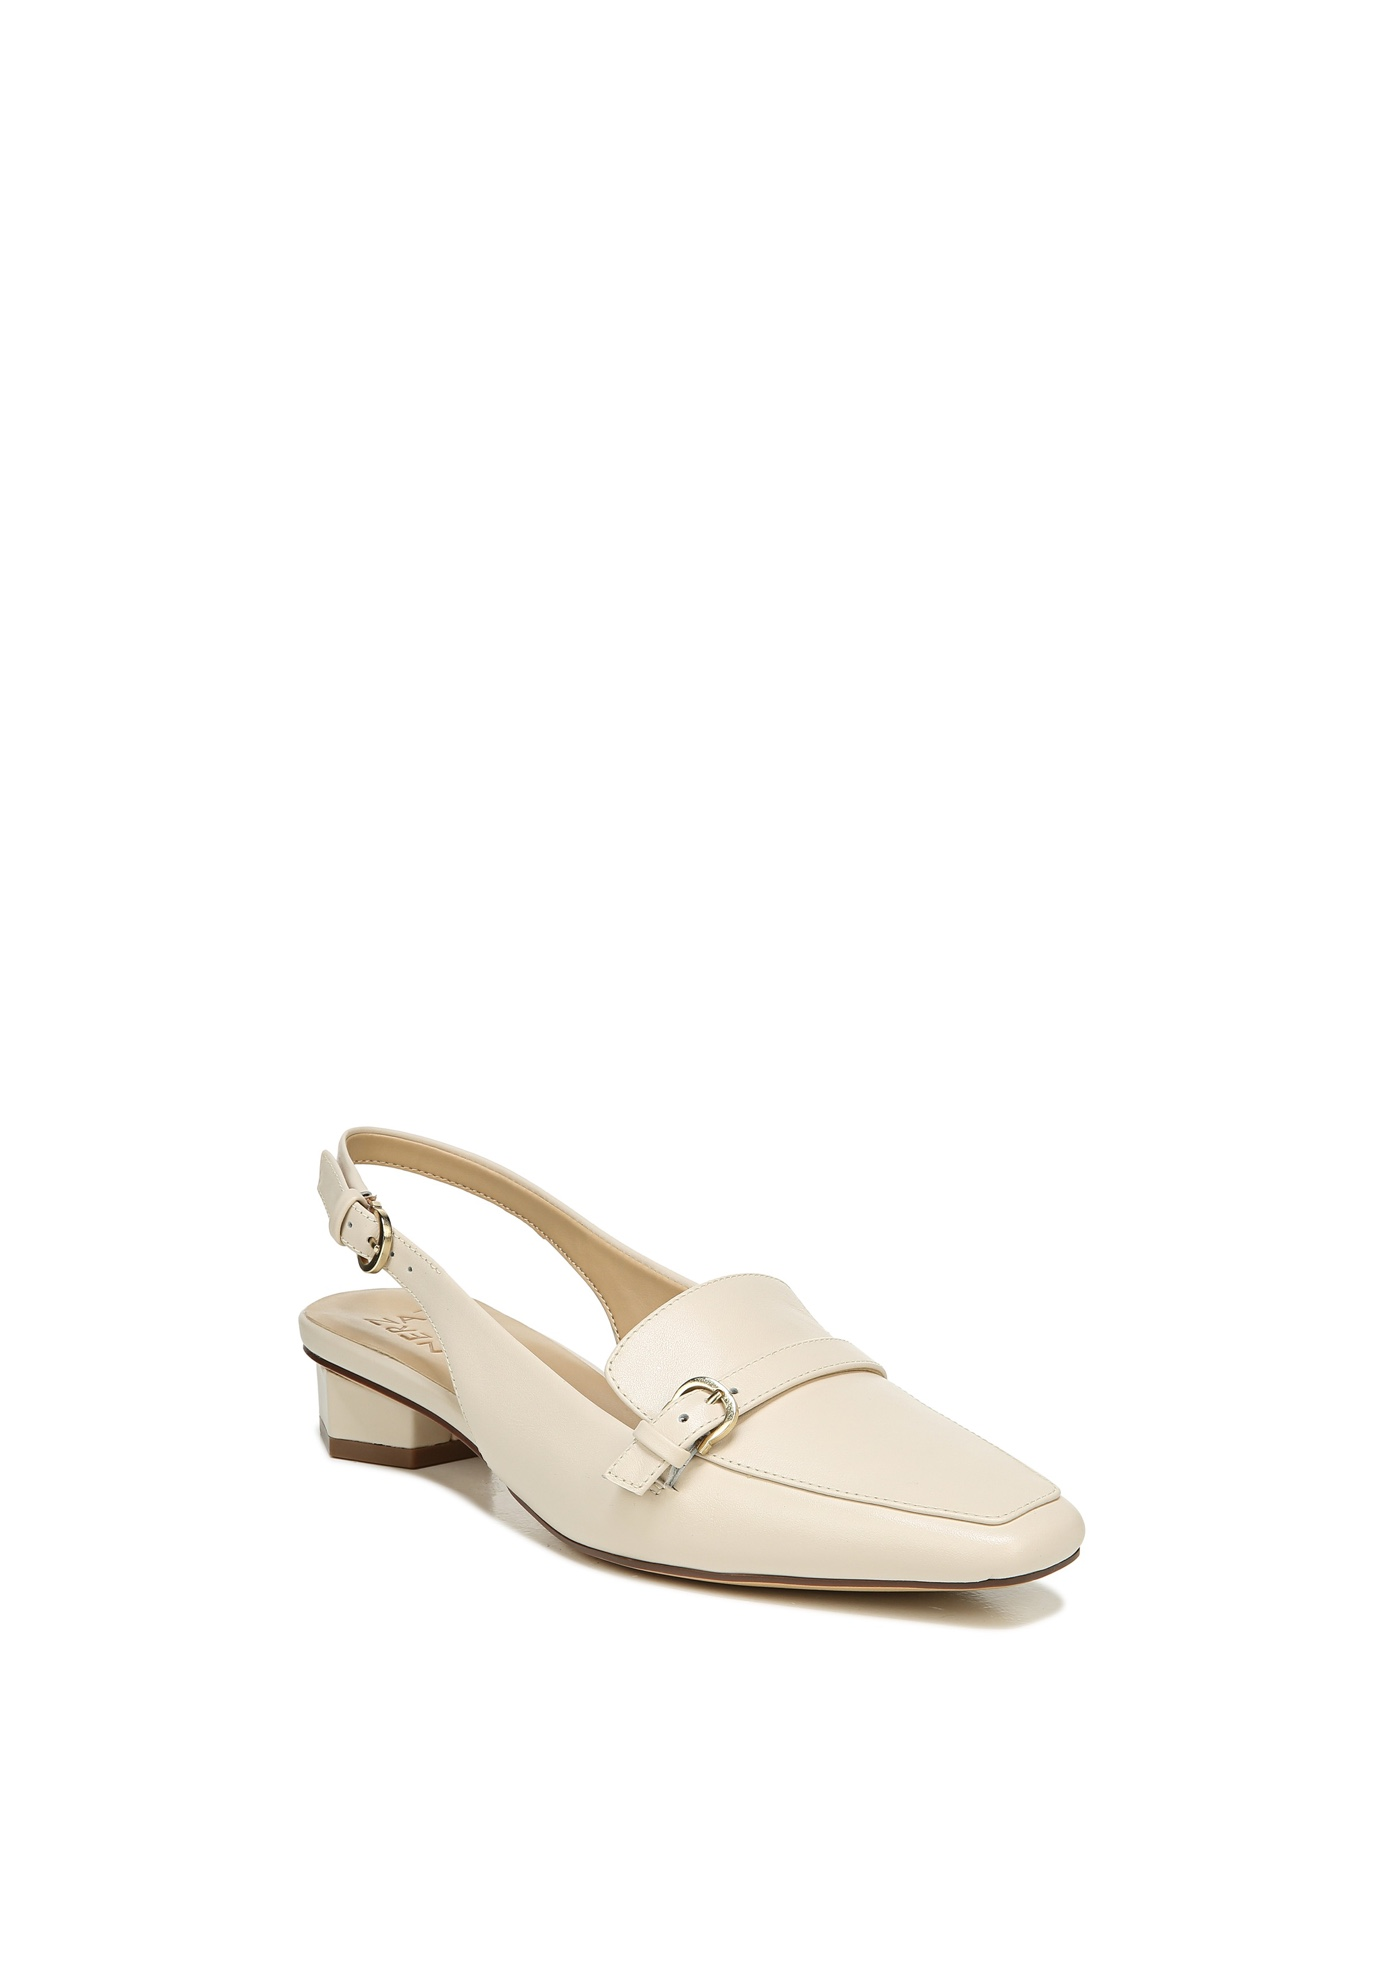 Finlay Slingback by Naturalizer,